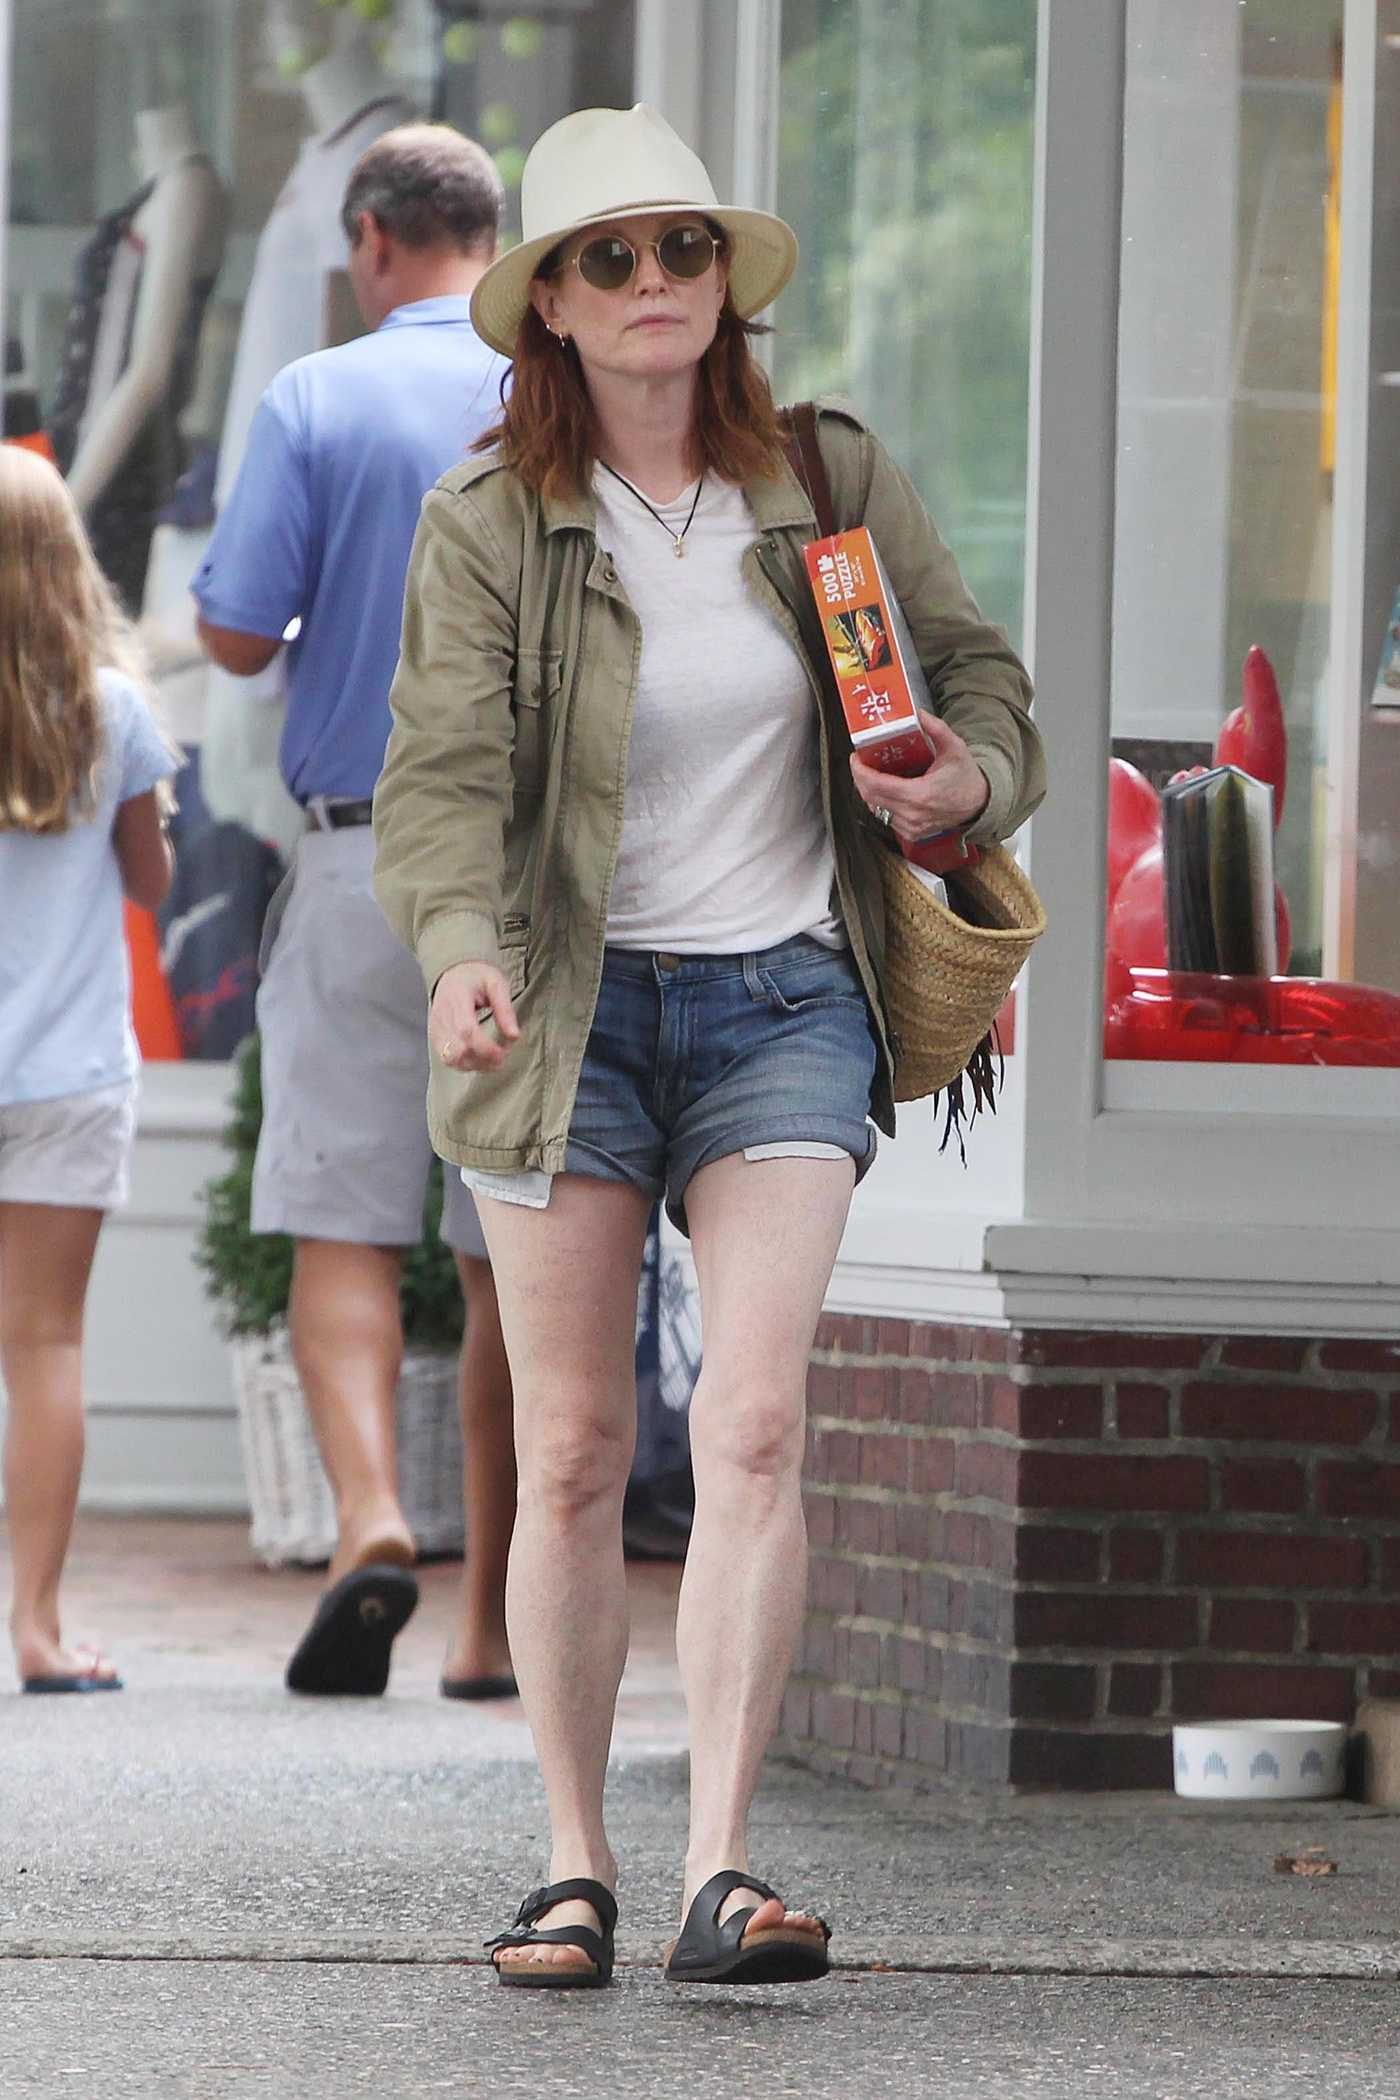 Julianne Moore Gets a 500 Piece Puzzle in Hamptons in New York 08/22/2018